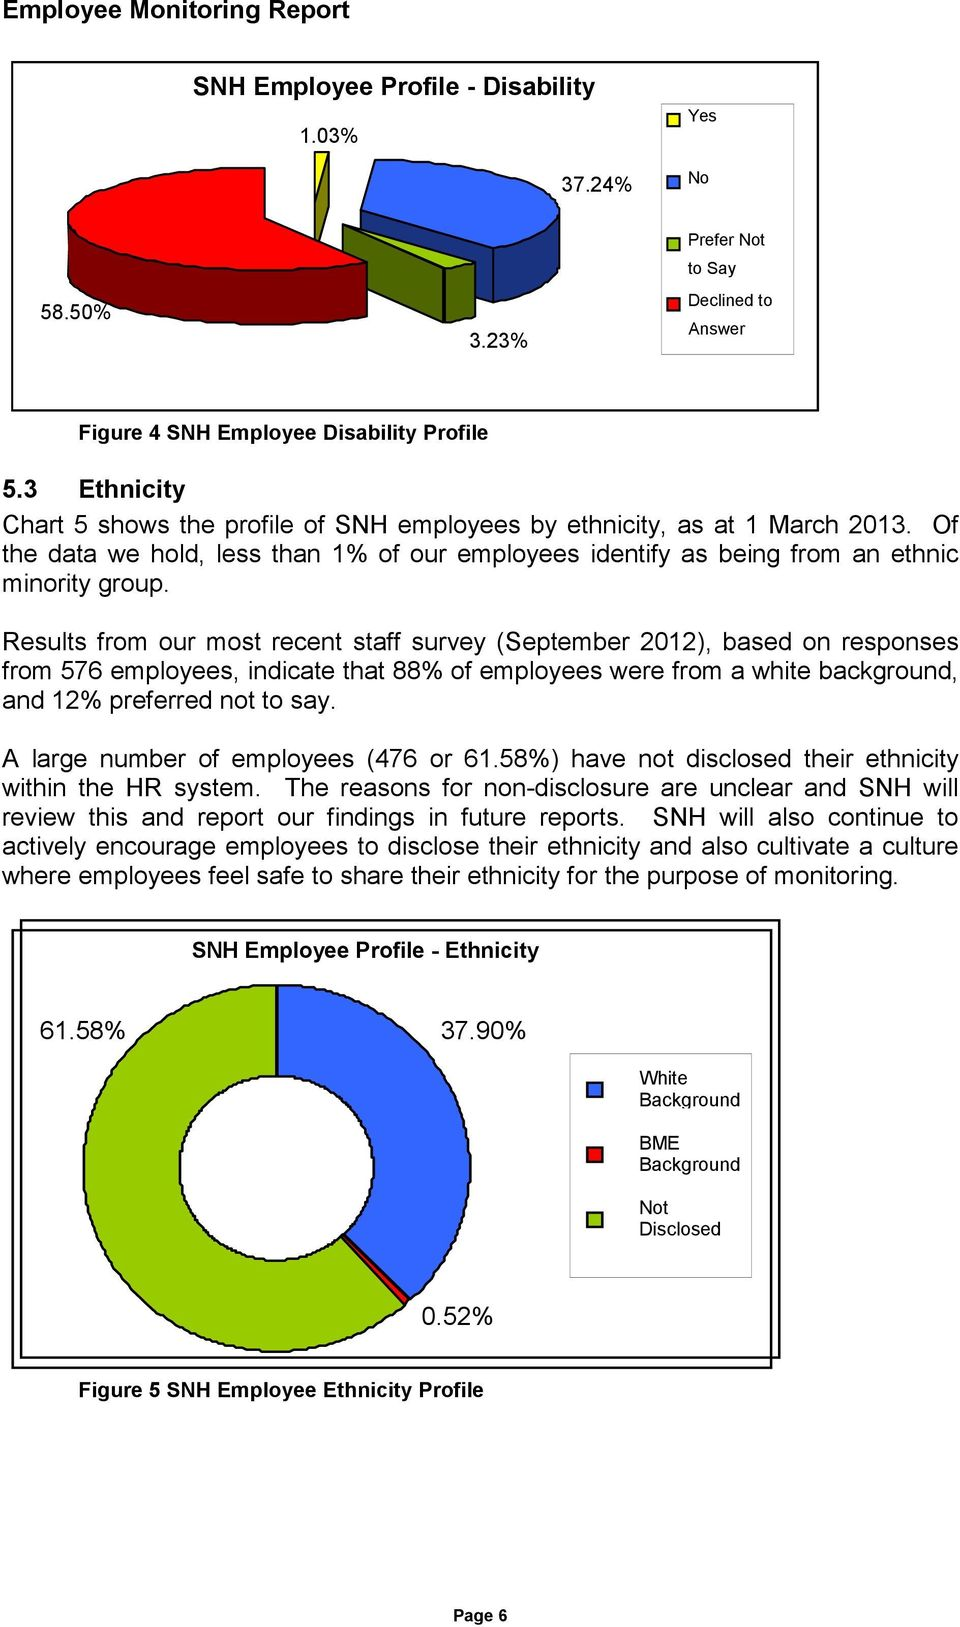 Results from our most recent staff survey (September 2012), based on responses from 576 employees, indicate that 88% of employees were from a white background, and 12% preferred not to say.